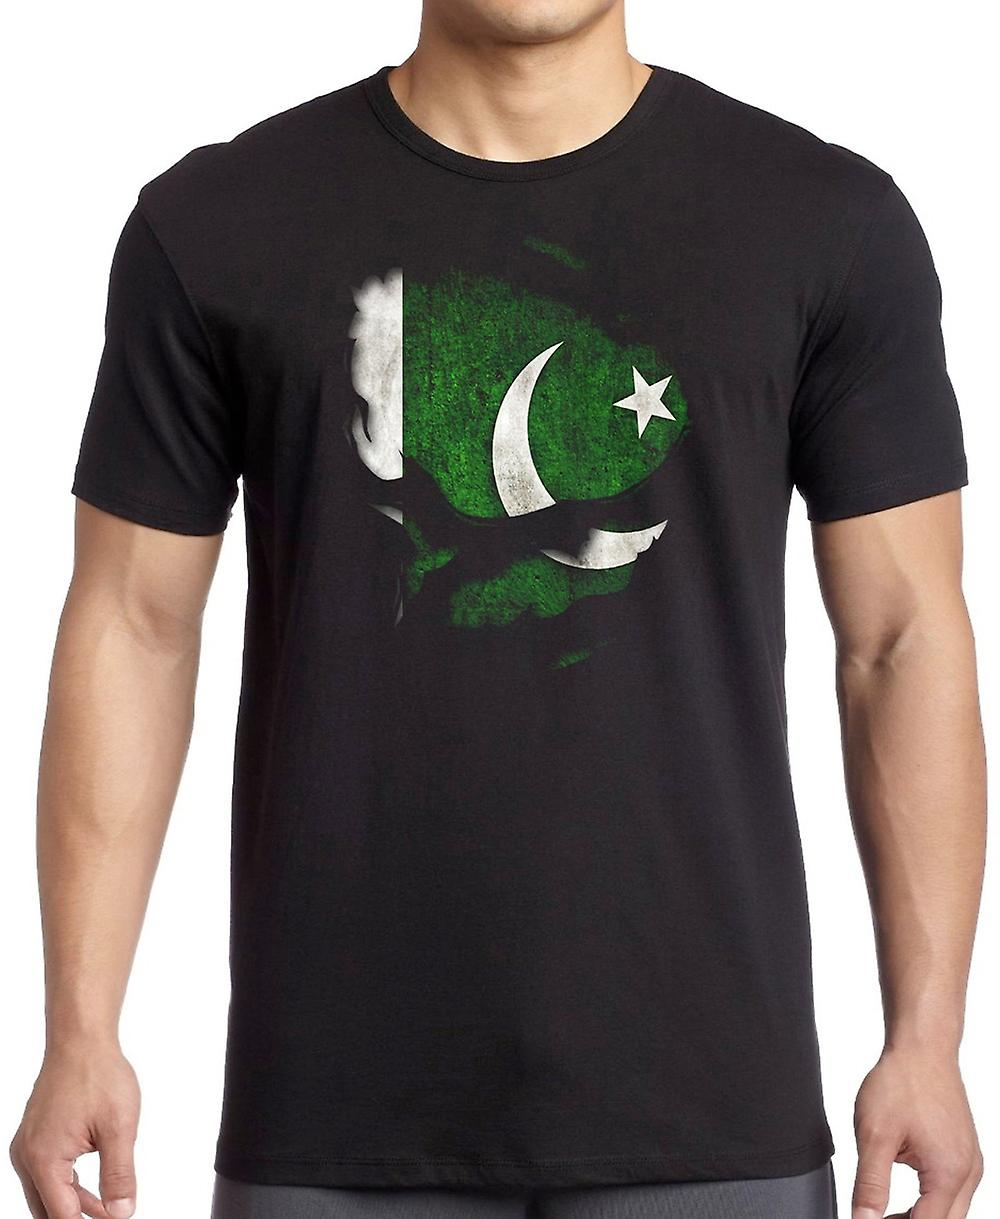 Pakistan Ripped Effect Under Shirt Women T Shirt